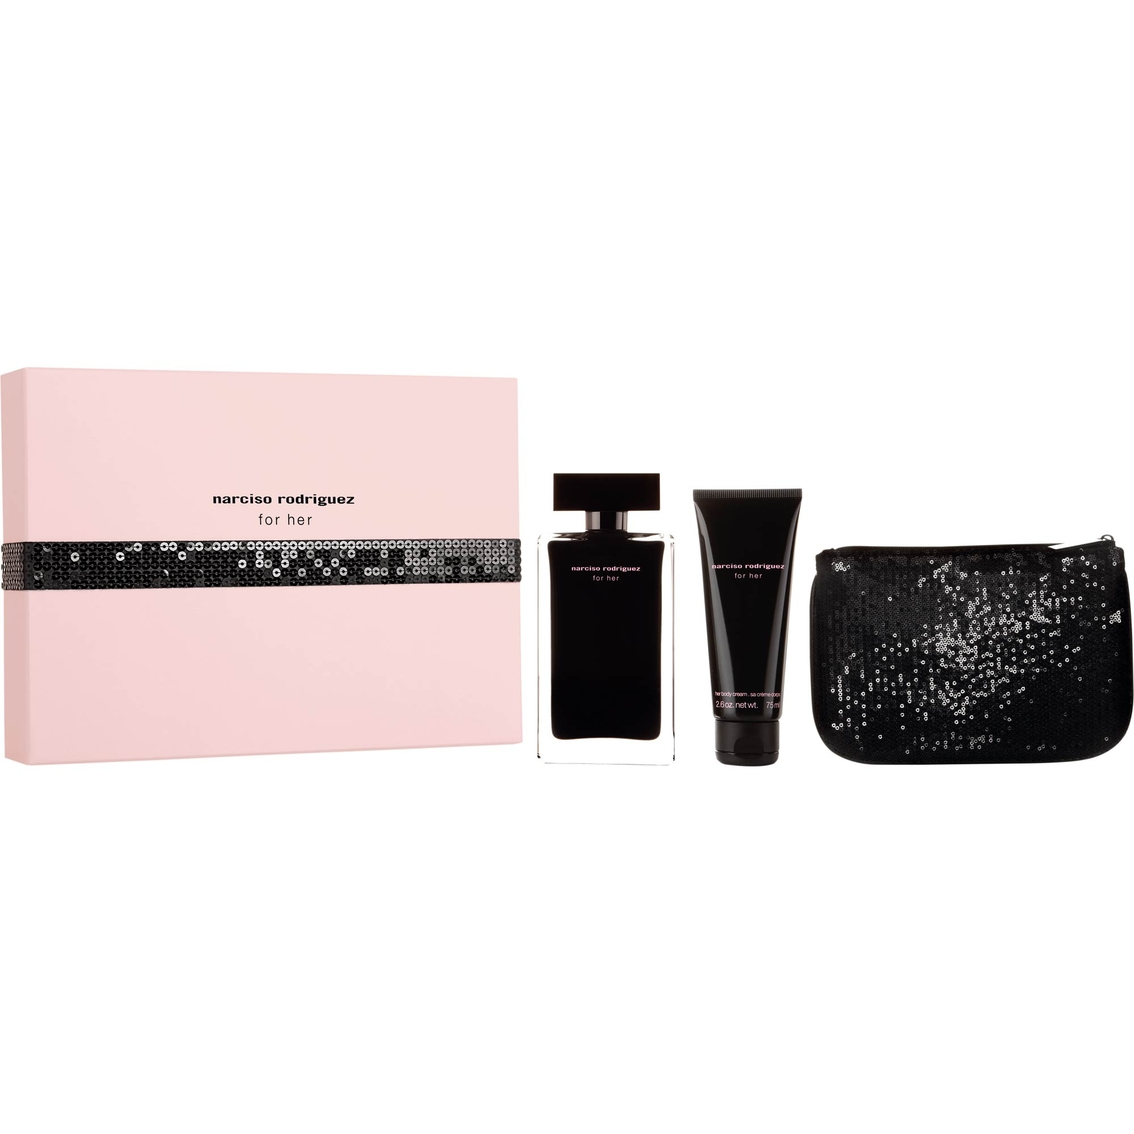 narciso rodriguez for her gift set gifts sets for her beauty health shop the exchange. Black Bedroom Furniture Sets. Home Design Ideas